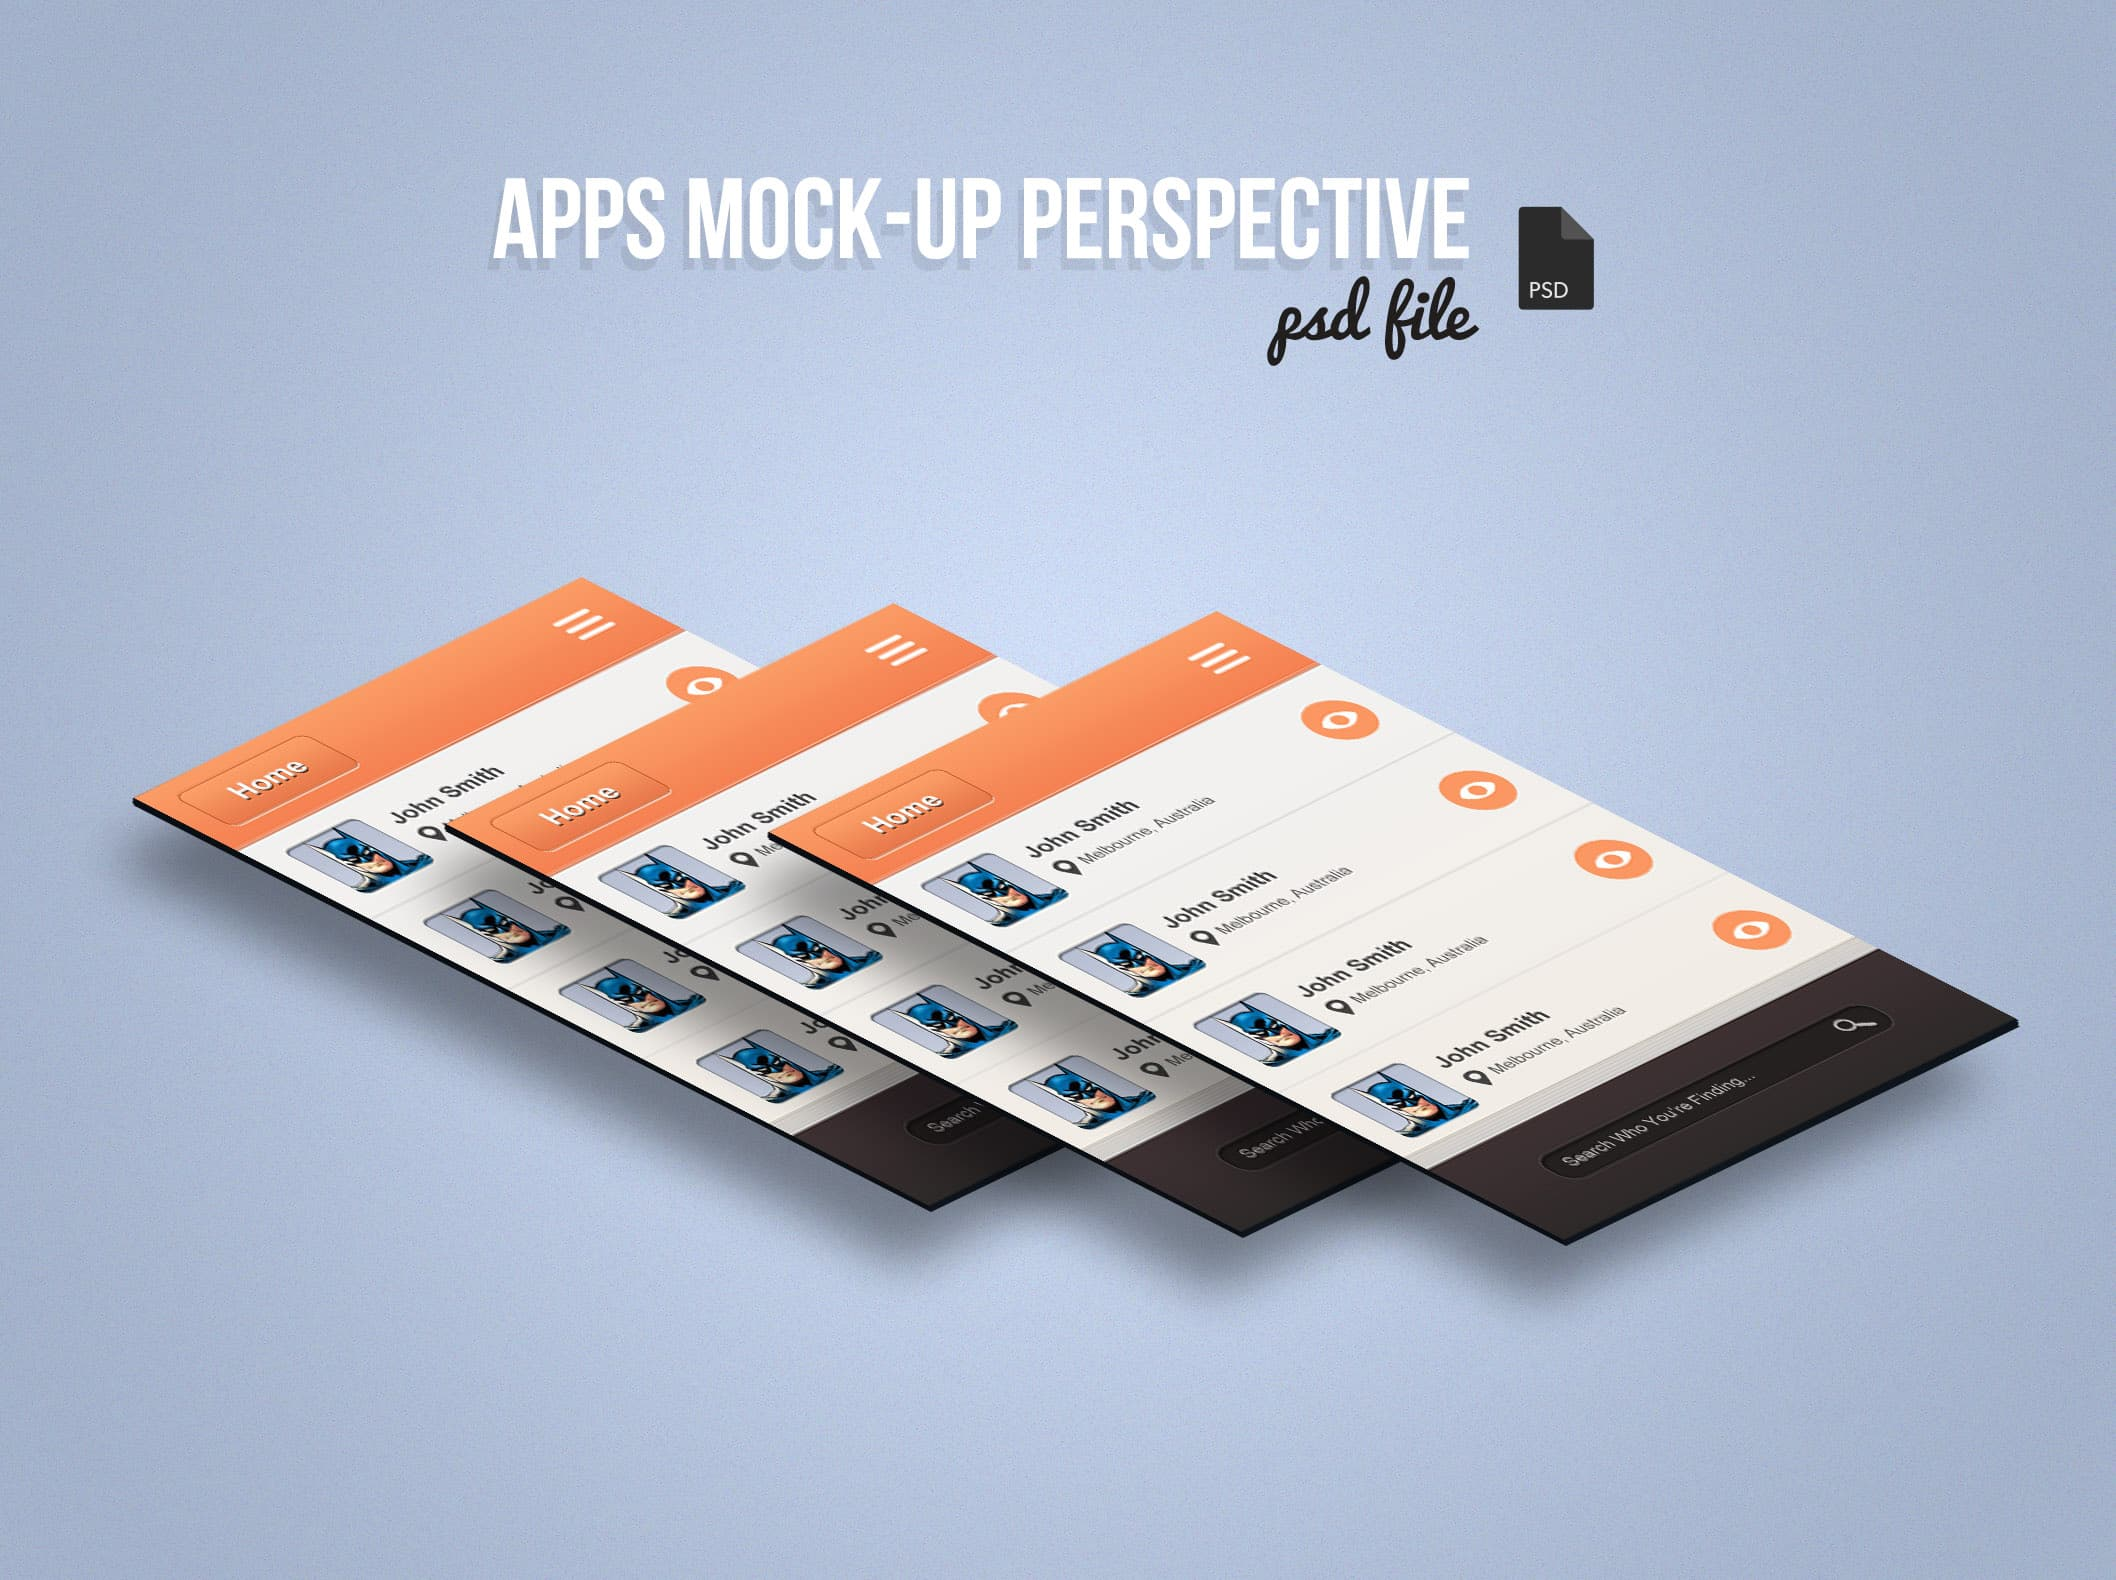 best free resume app iphone the 30 best iphone apps for designers creative bloq free app - Free Resume Apps